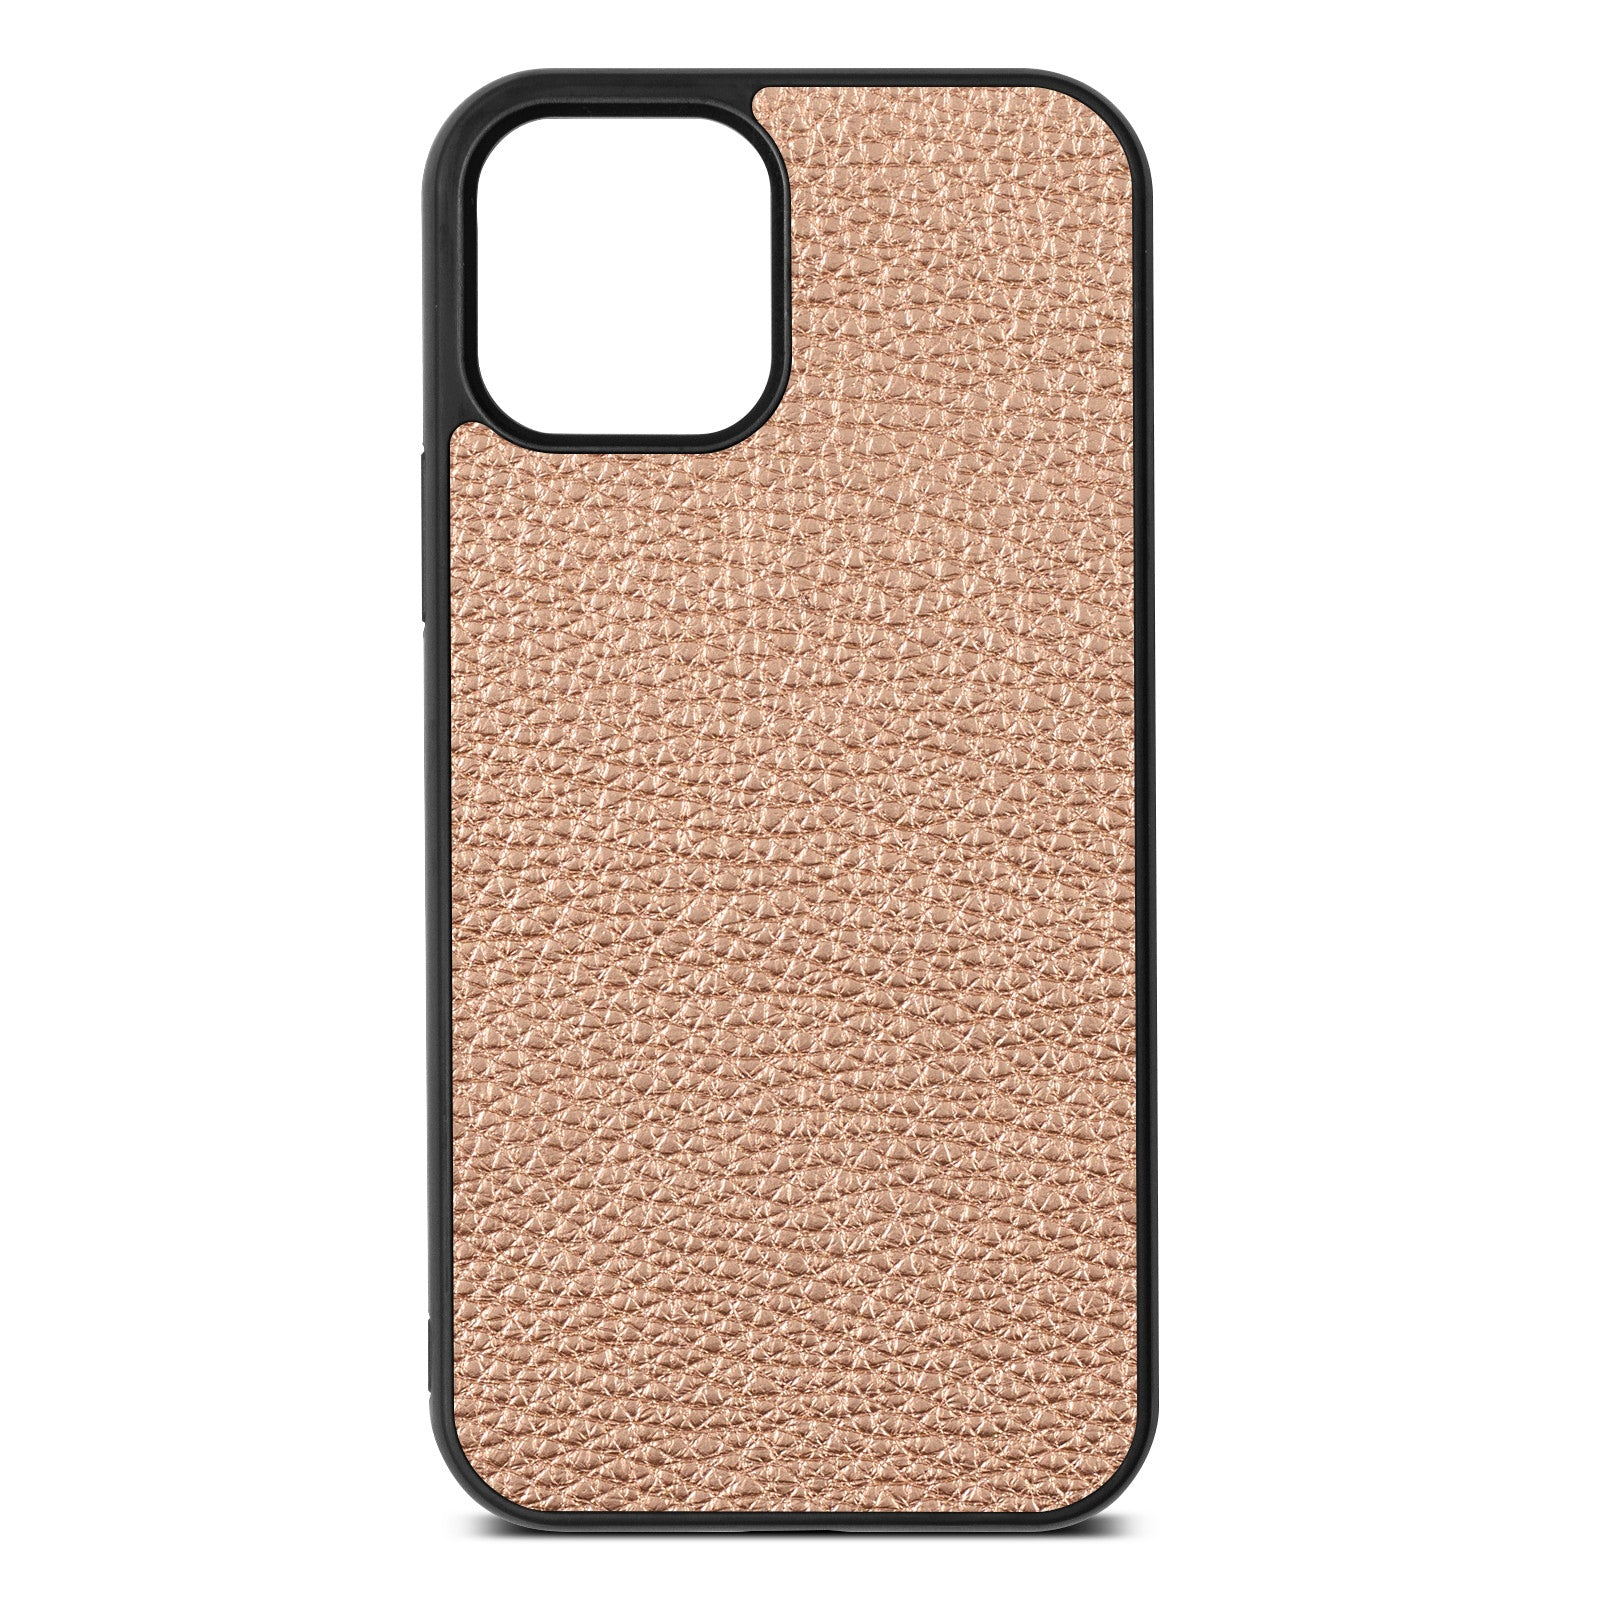 Blank iPhone 12 Rose Gold Pebble Leather Case